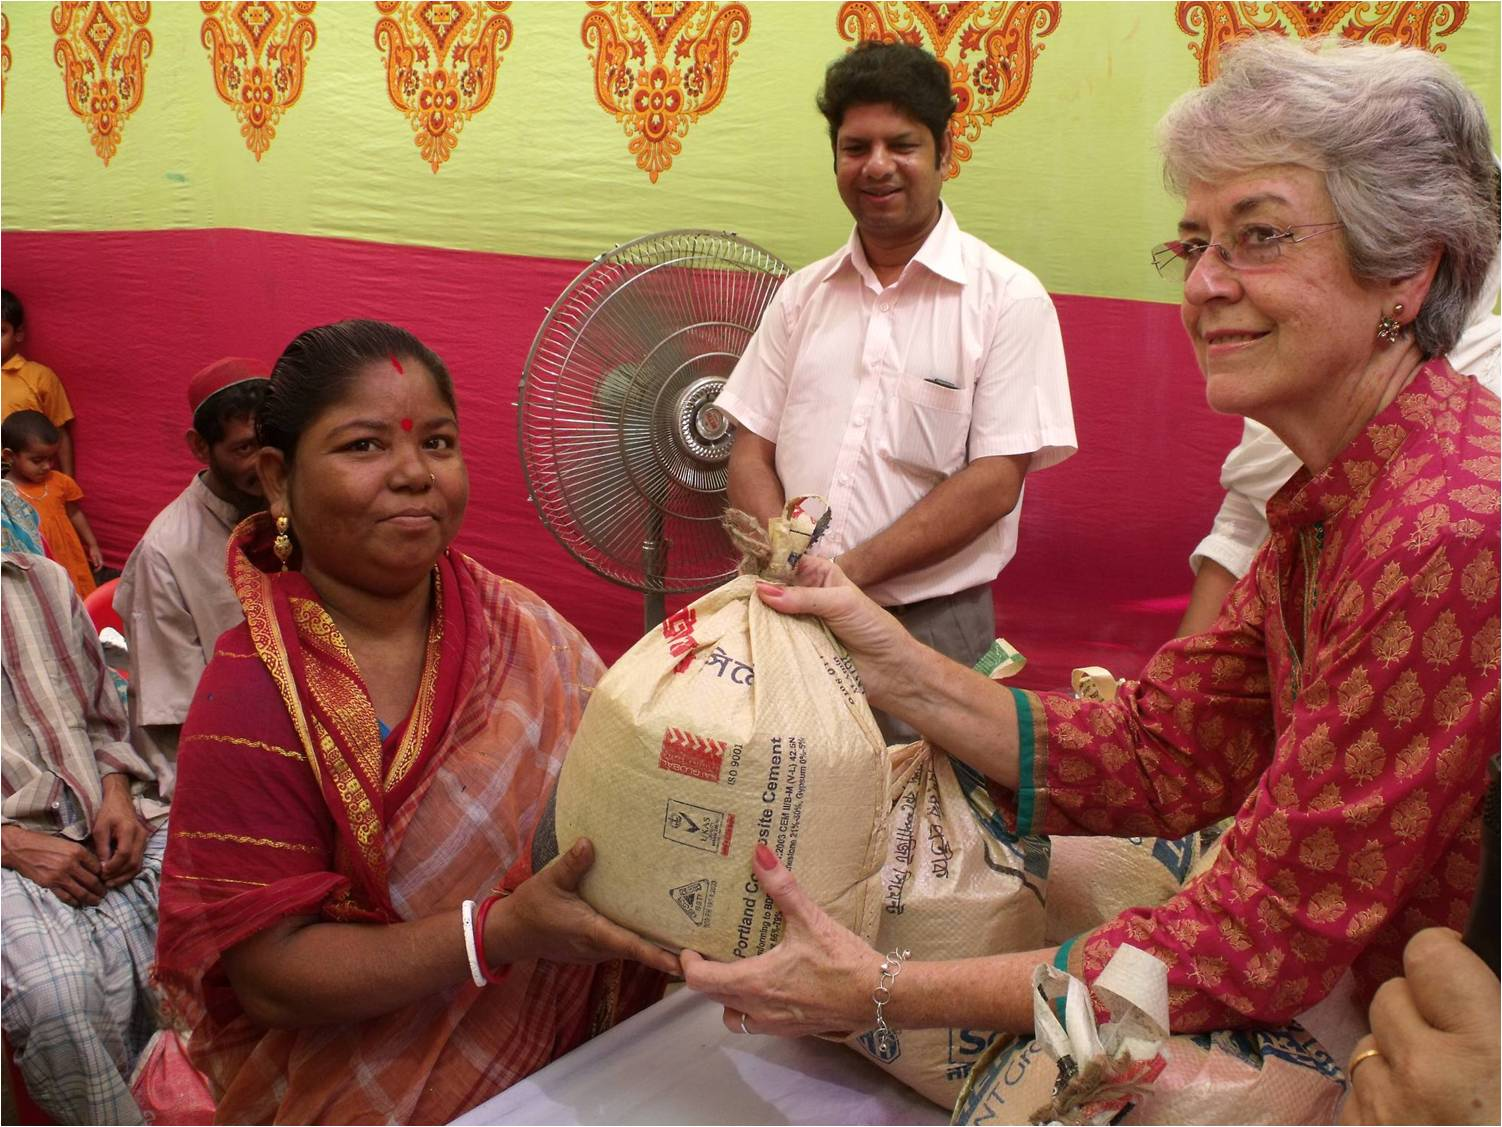 Giving out rice and dal